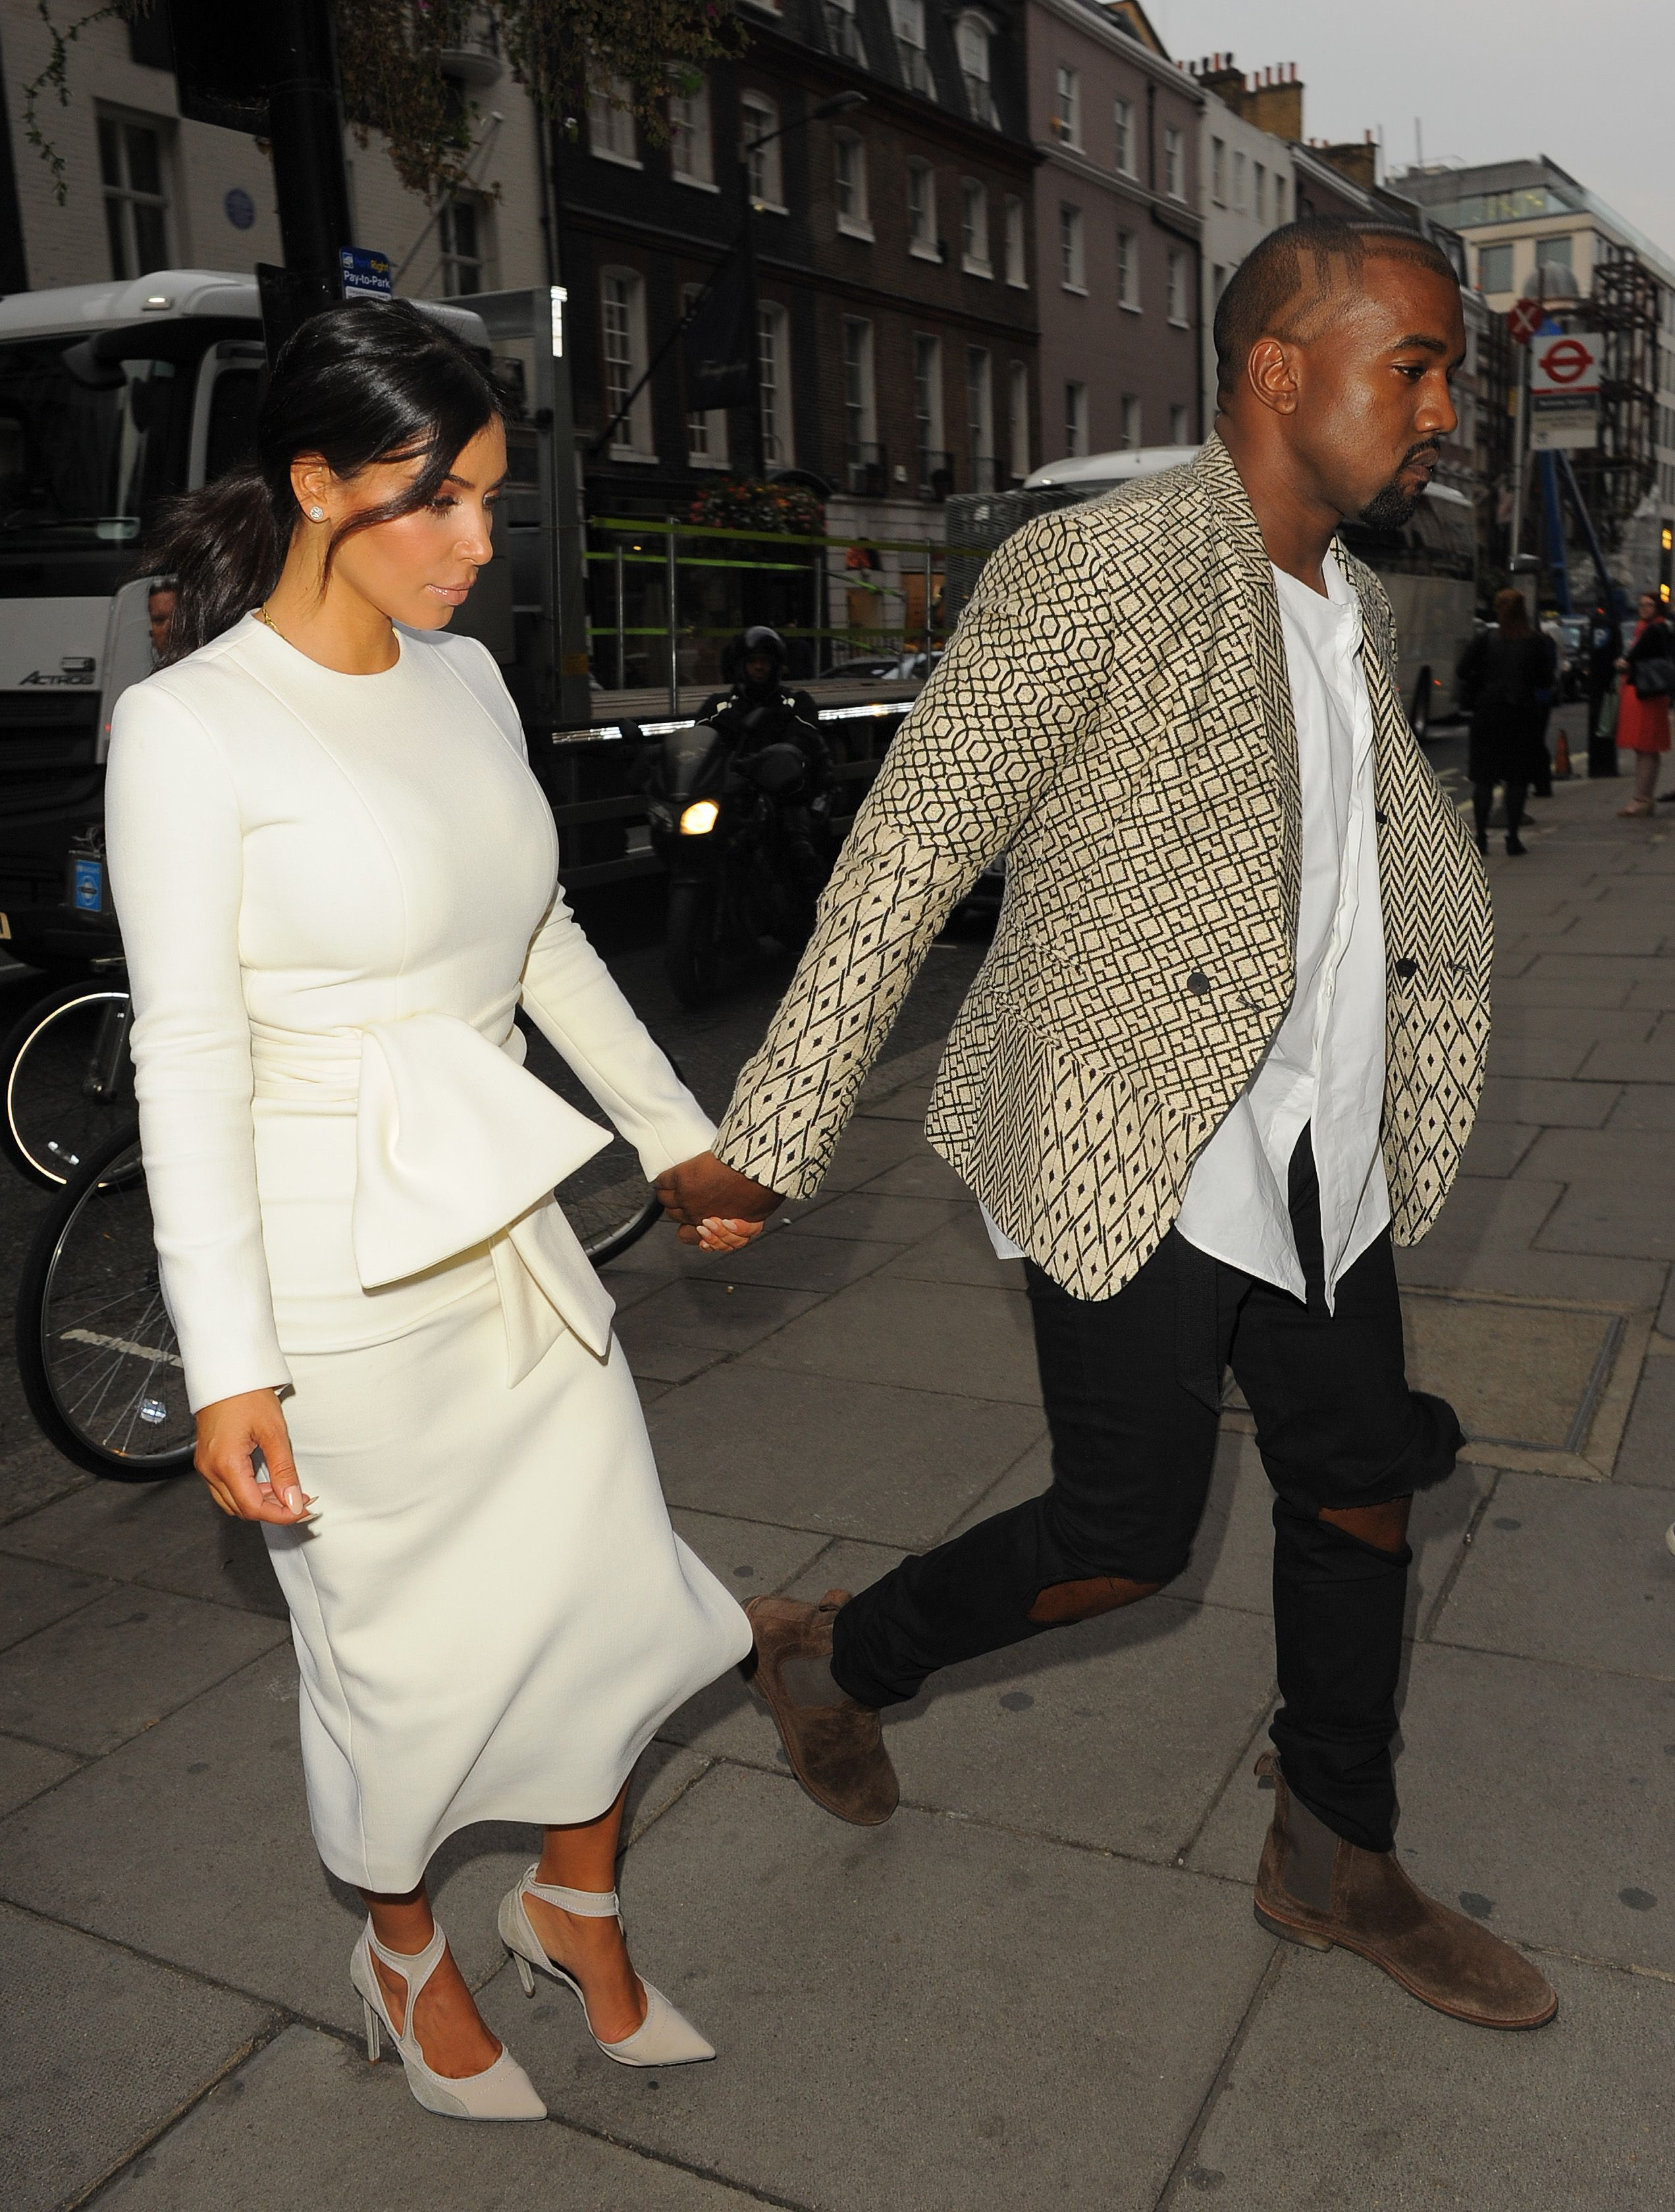 924b826d Kim and Kanye leaving The Dorchester Hotel and heading to Hakkasan  Restaurant in London